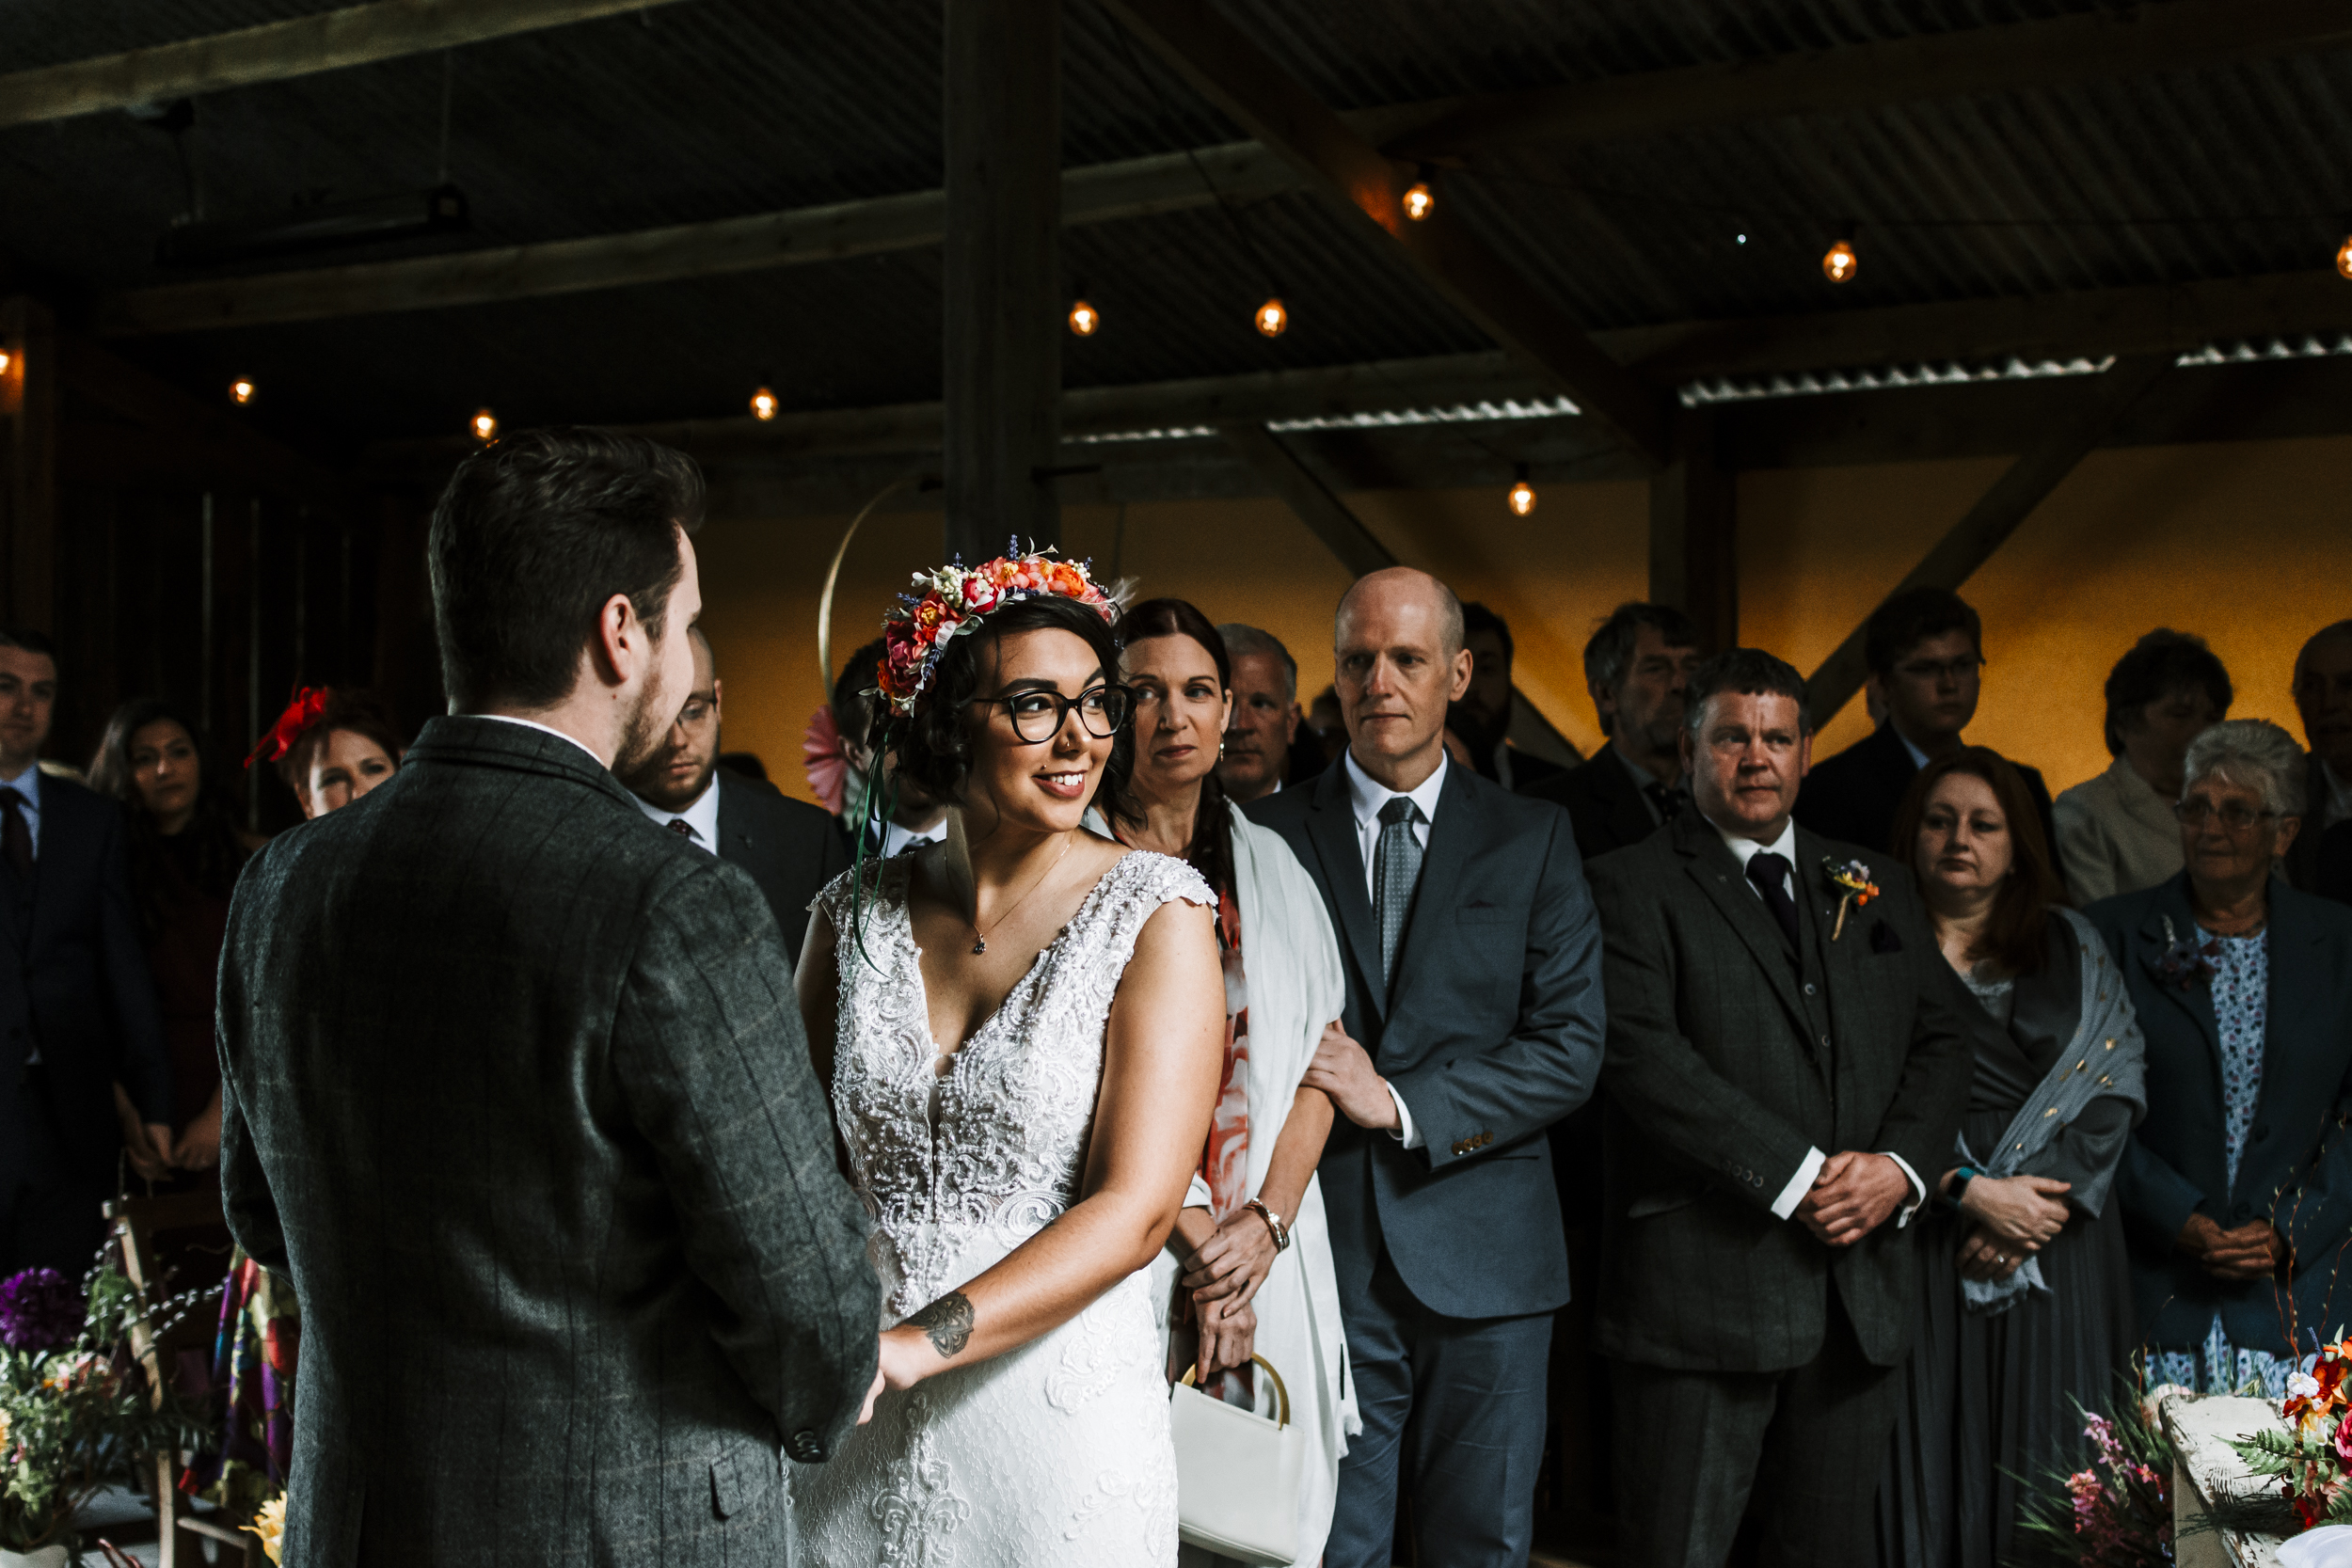 Rustic Barn Wedding Ceremony at Nancarrow Farm.jpg